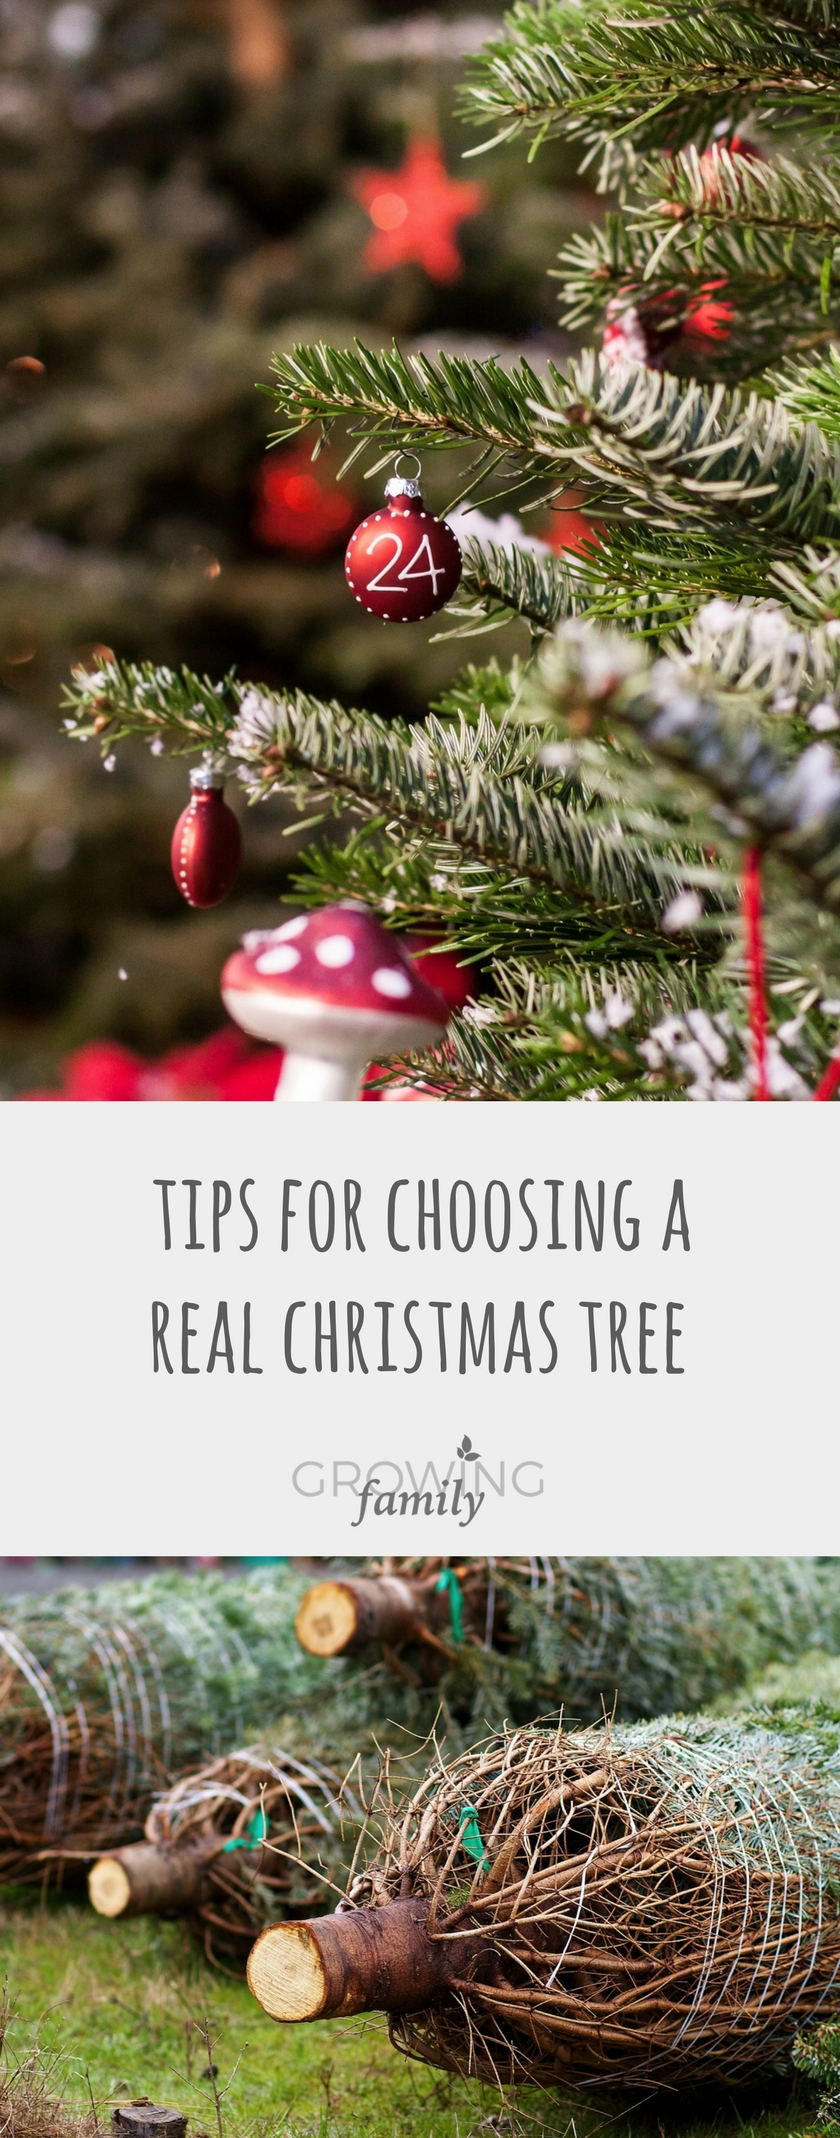 How to choose a Christmas tree